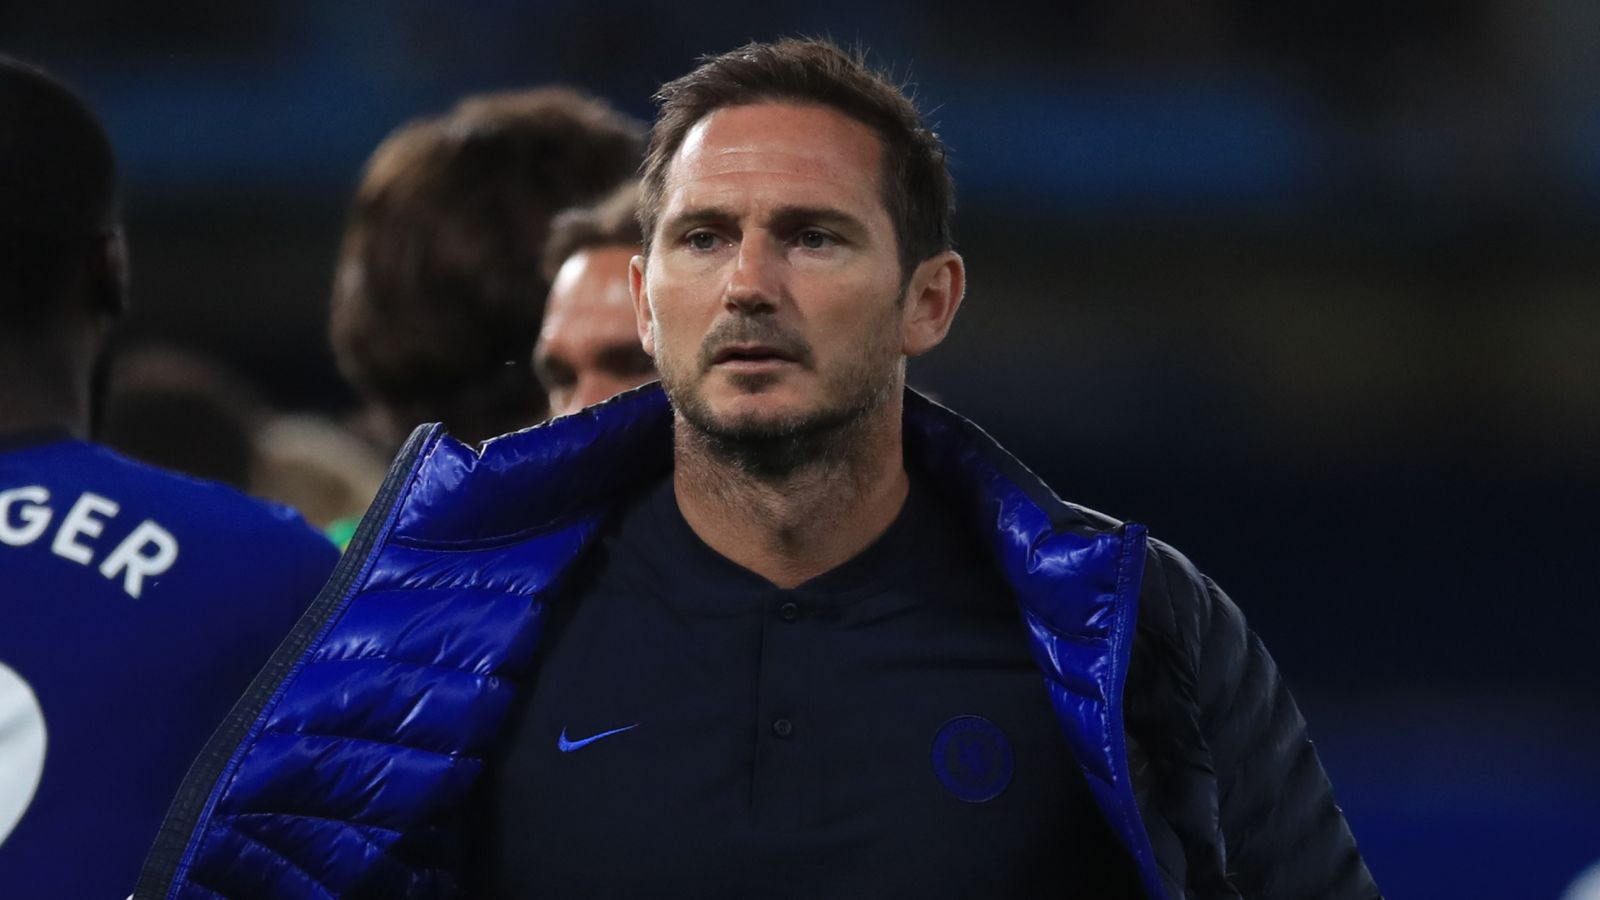 Frank Lampard: Chelsea boss admits side must improve after 'nervy' performance